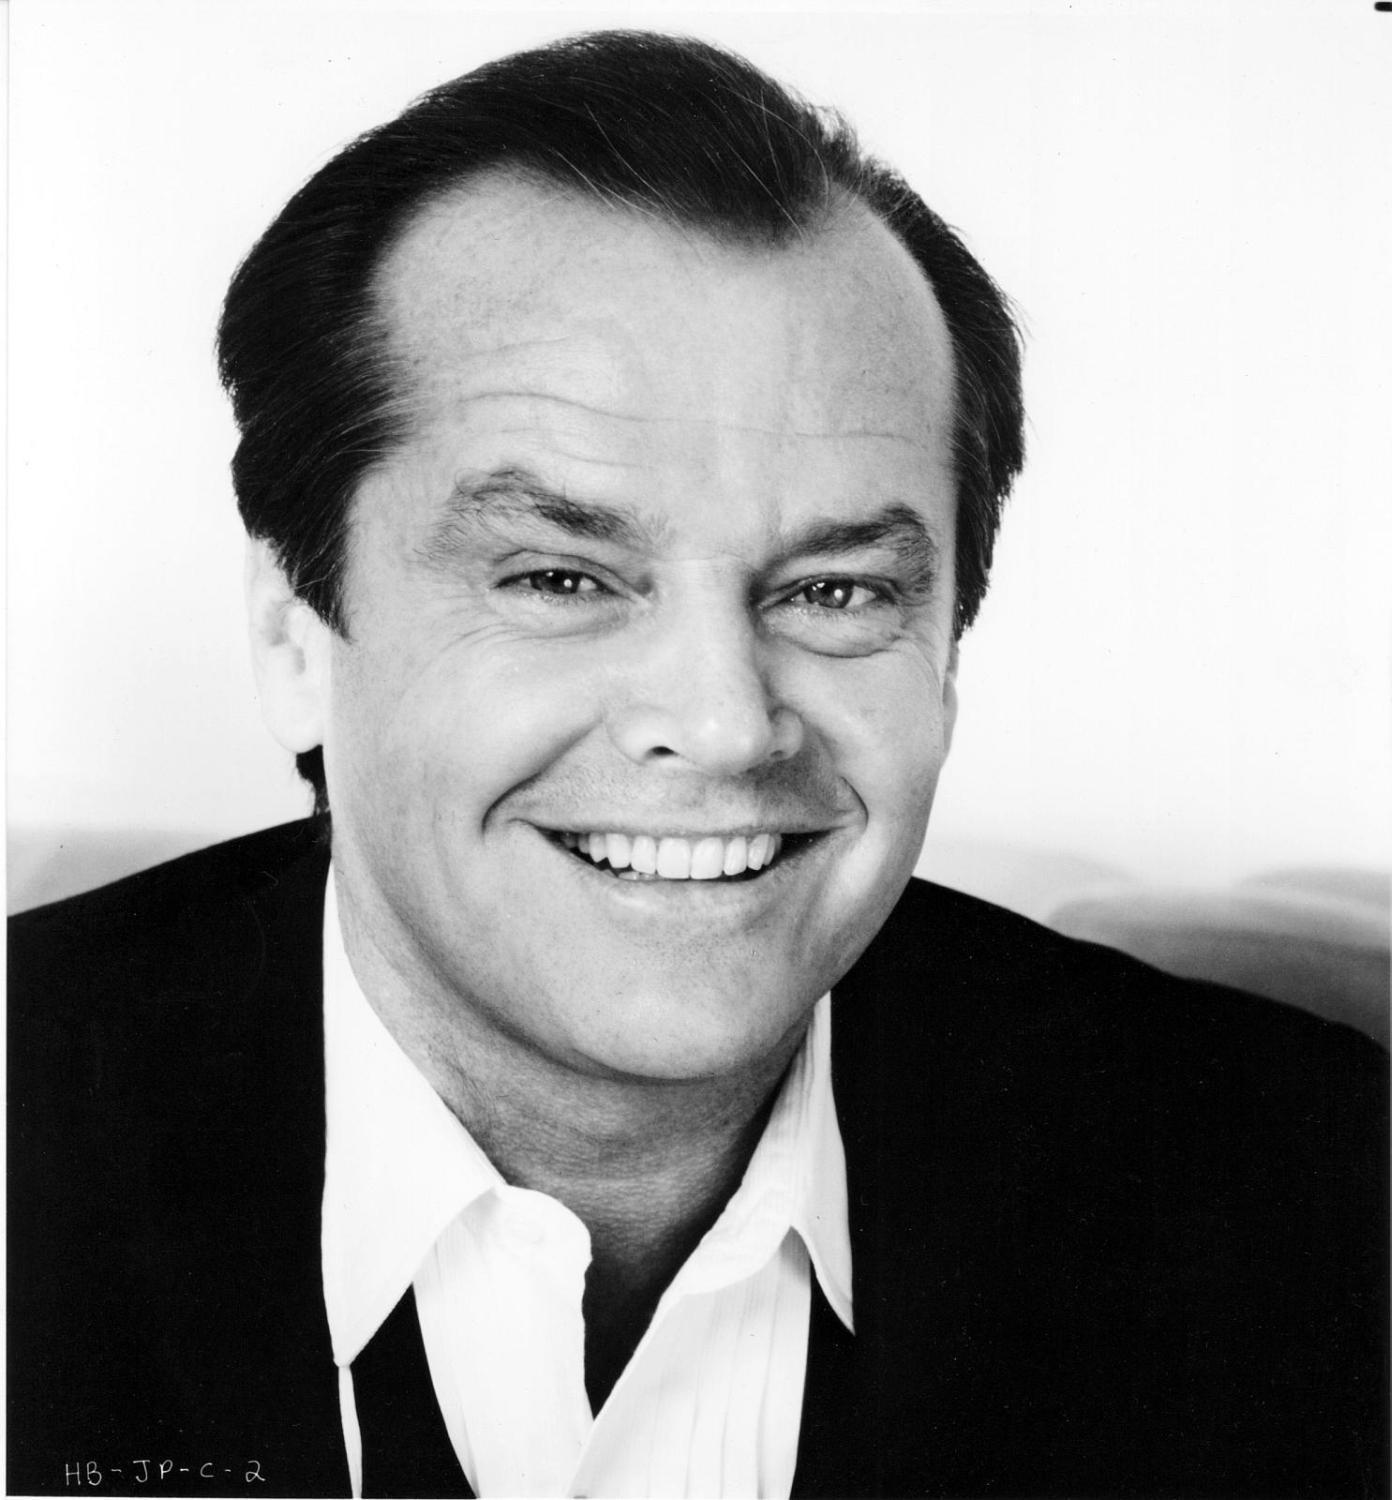 pictures photos of jack nicholson imdb jack nicholson images picture jack nicholson pictures